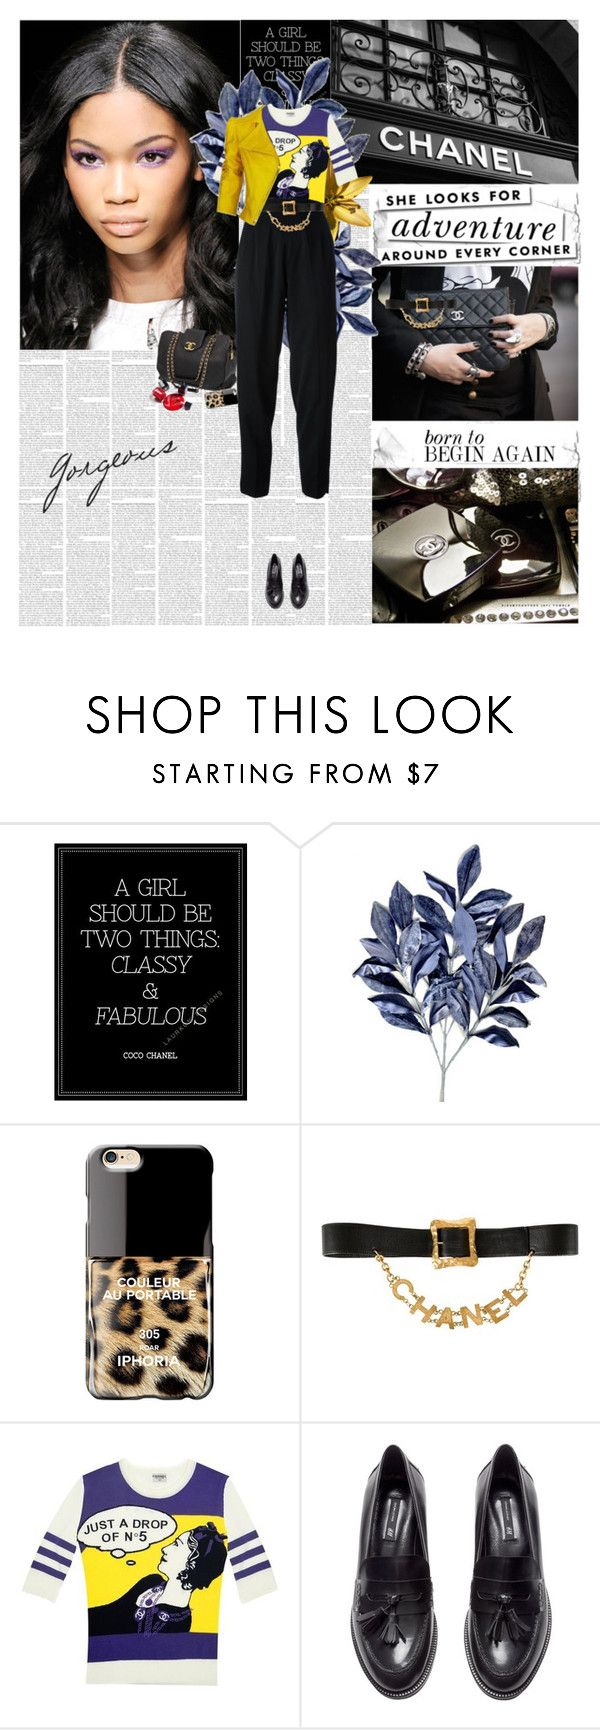 """Chanel"" by amimcqueen ❤ liked on Polyvore featuring Chanel, Kate Spade, Iphoria, Karl Lagerfeld, H&M, Emanuel Ungaro, women's clothing, women, female and woman"